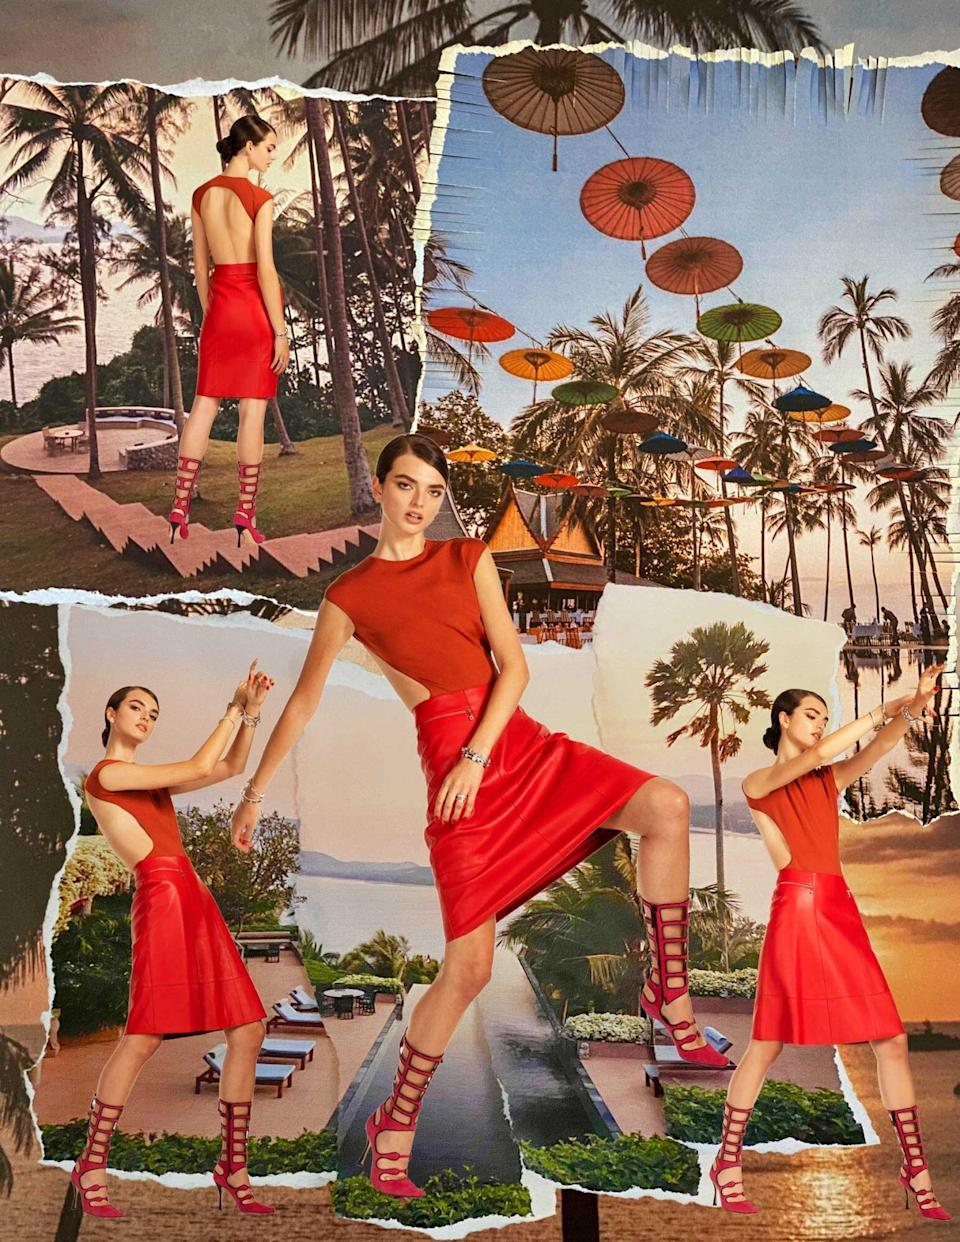 Photos of a model wearing a red cutout dress, superimposed over photos of the Amanpuri resort